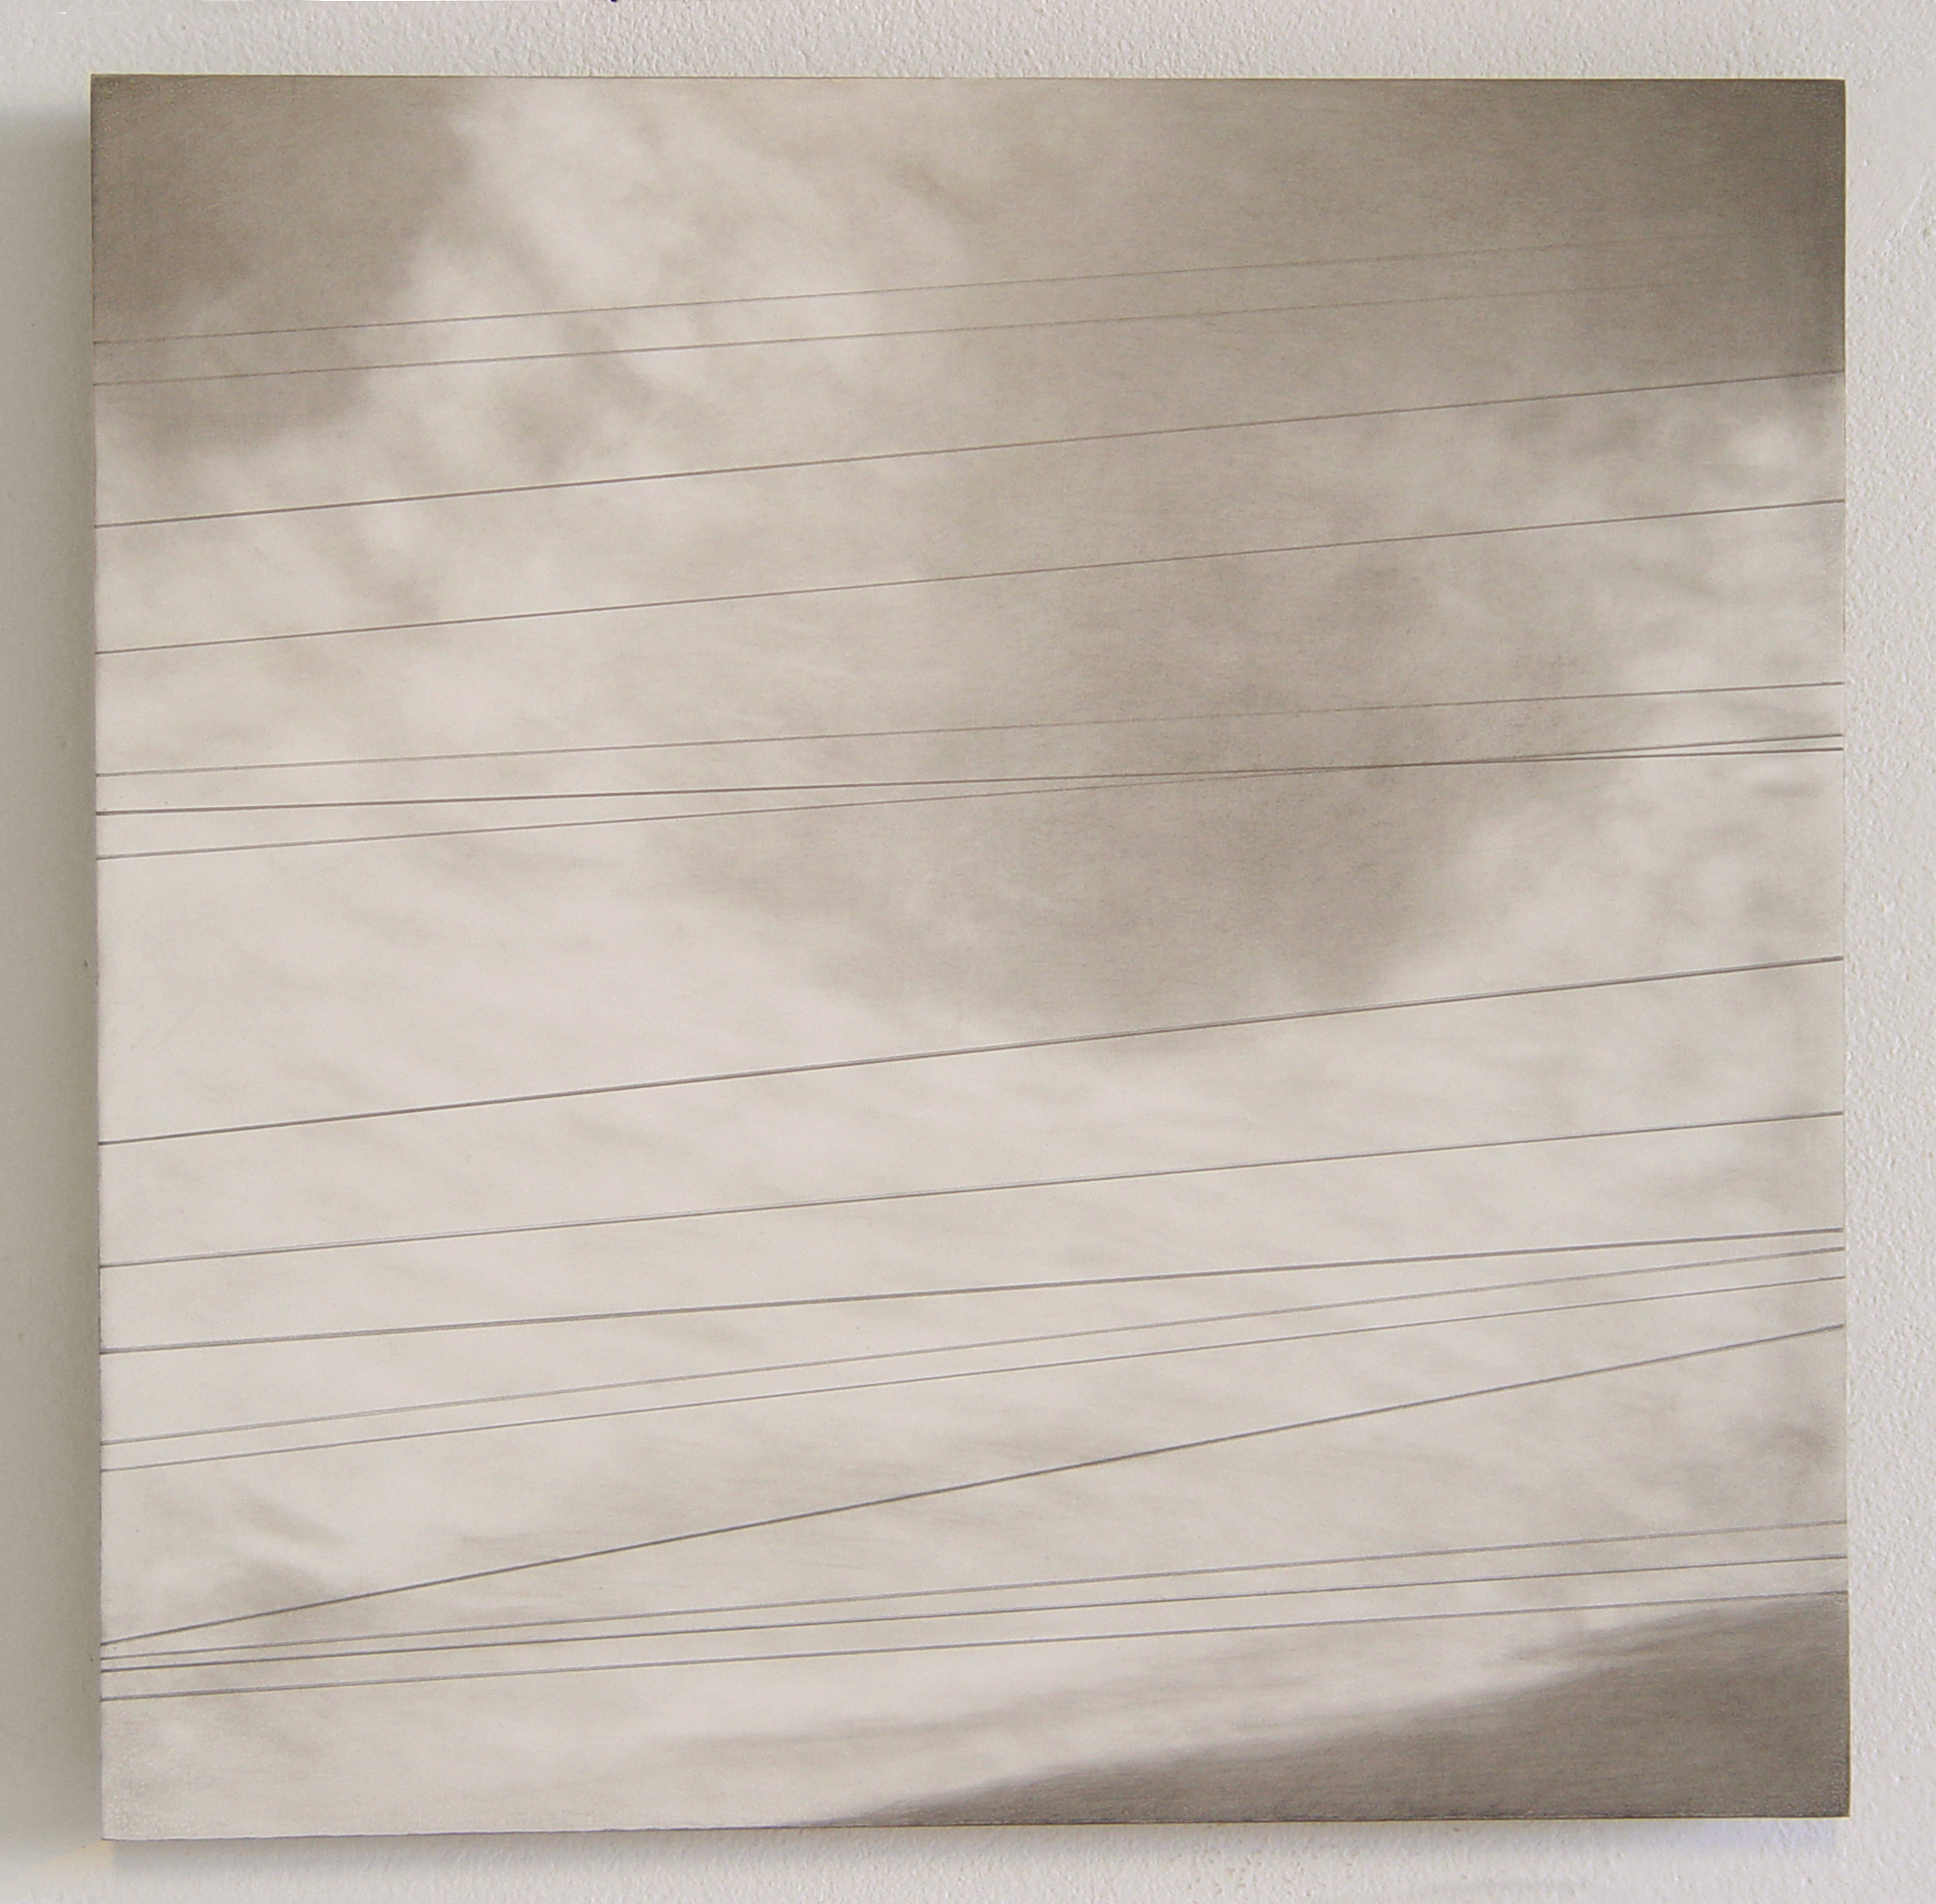 """Lines #5,  2003-2004, graphite on formica mounted on masonite, 11"""" x 11"""". Image courtesy of Patricia Zarate."""